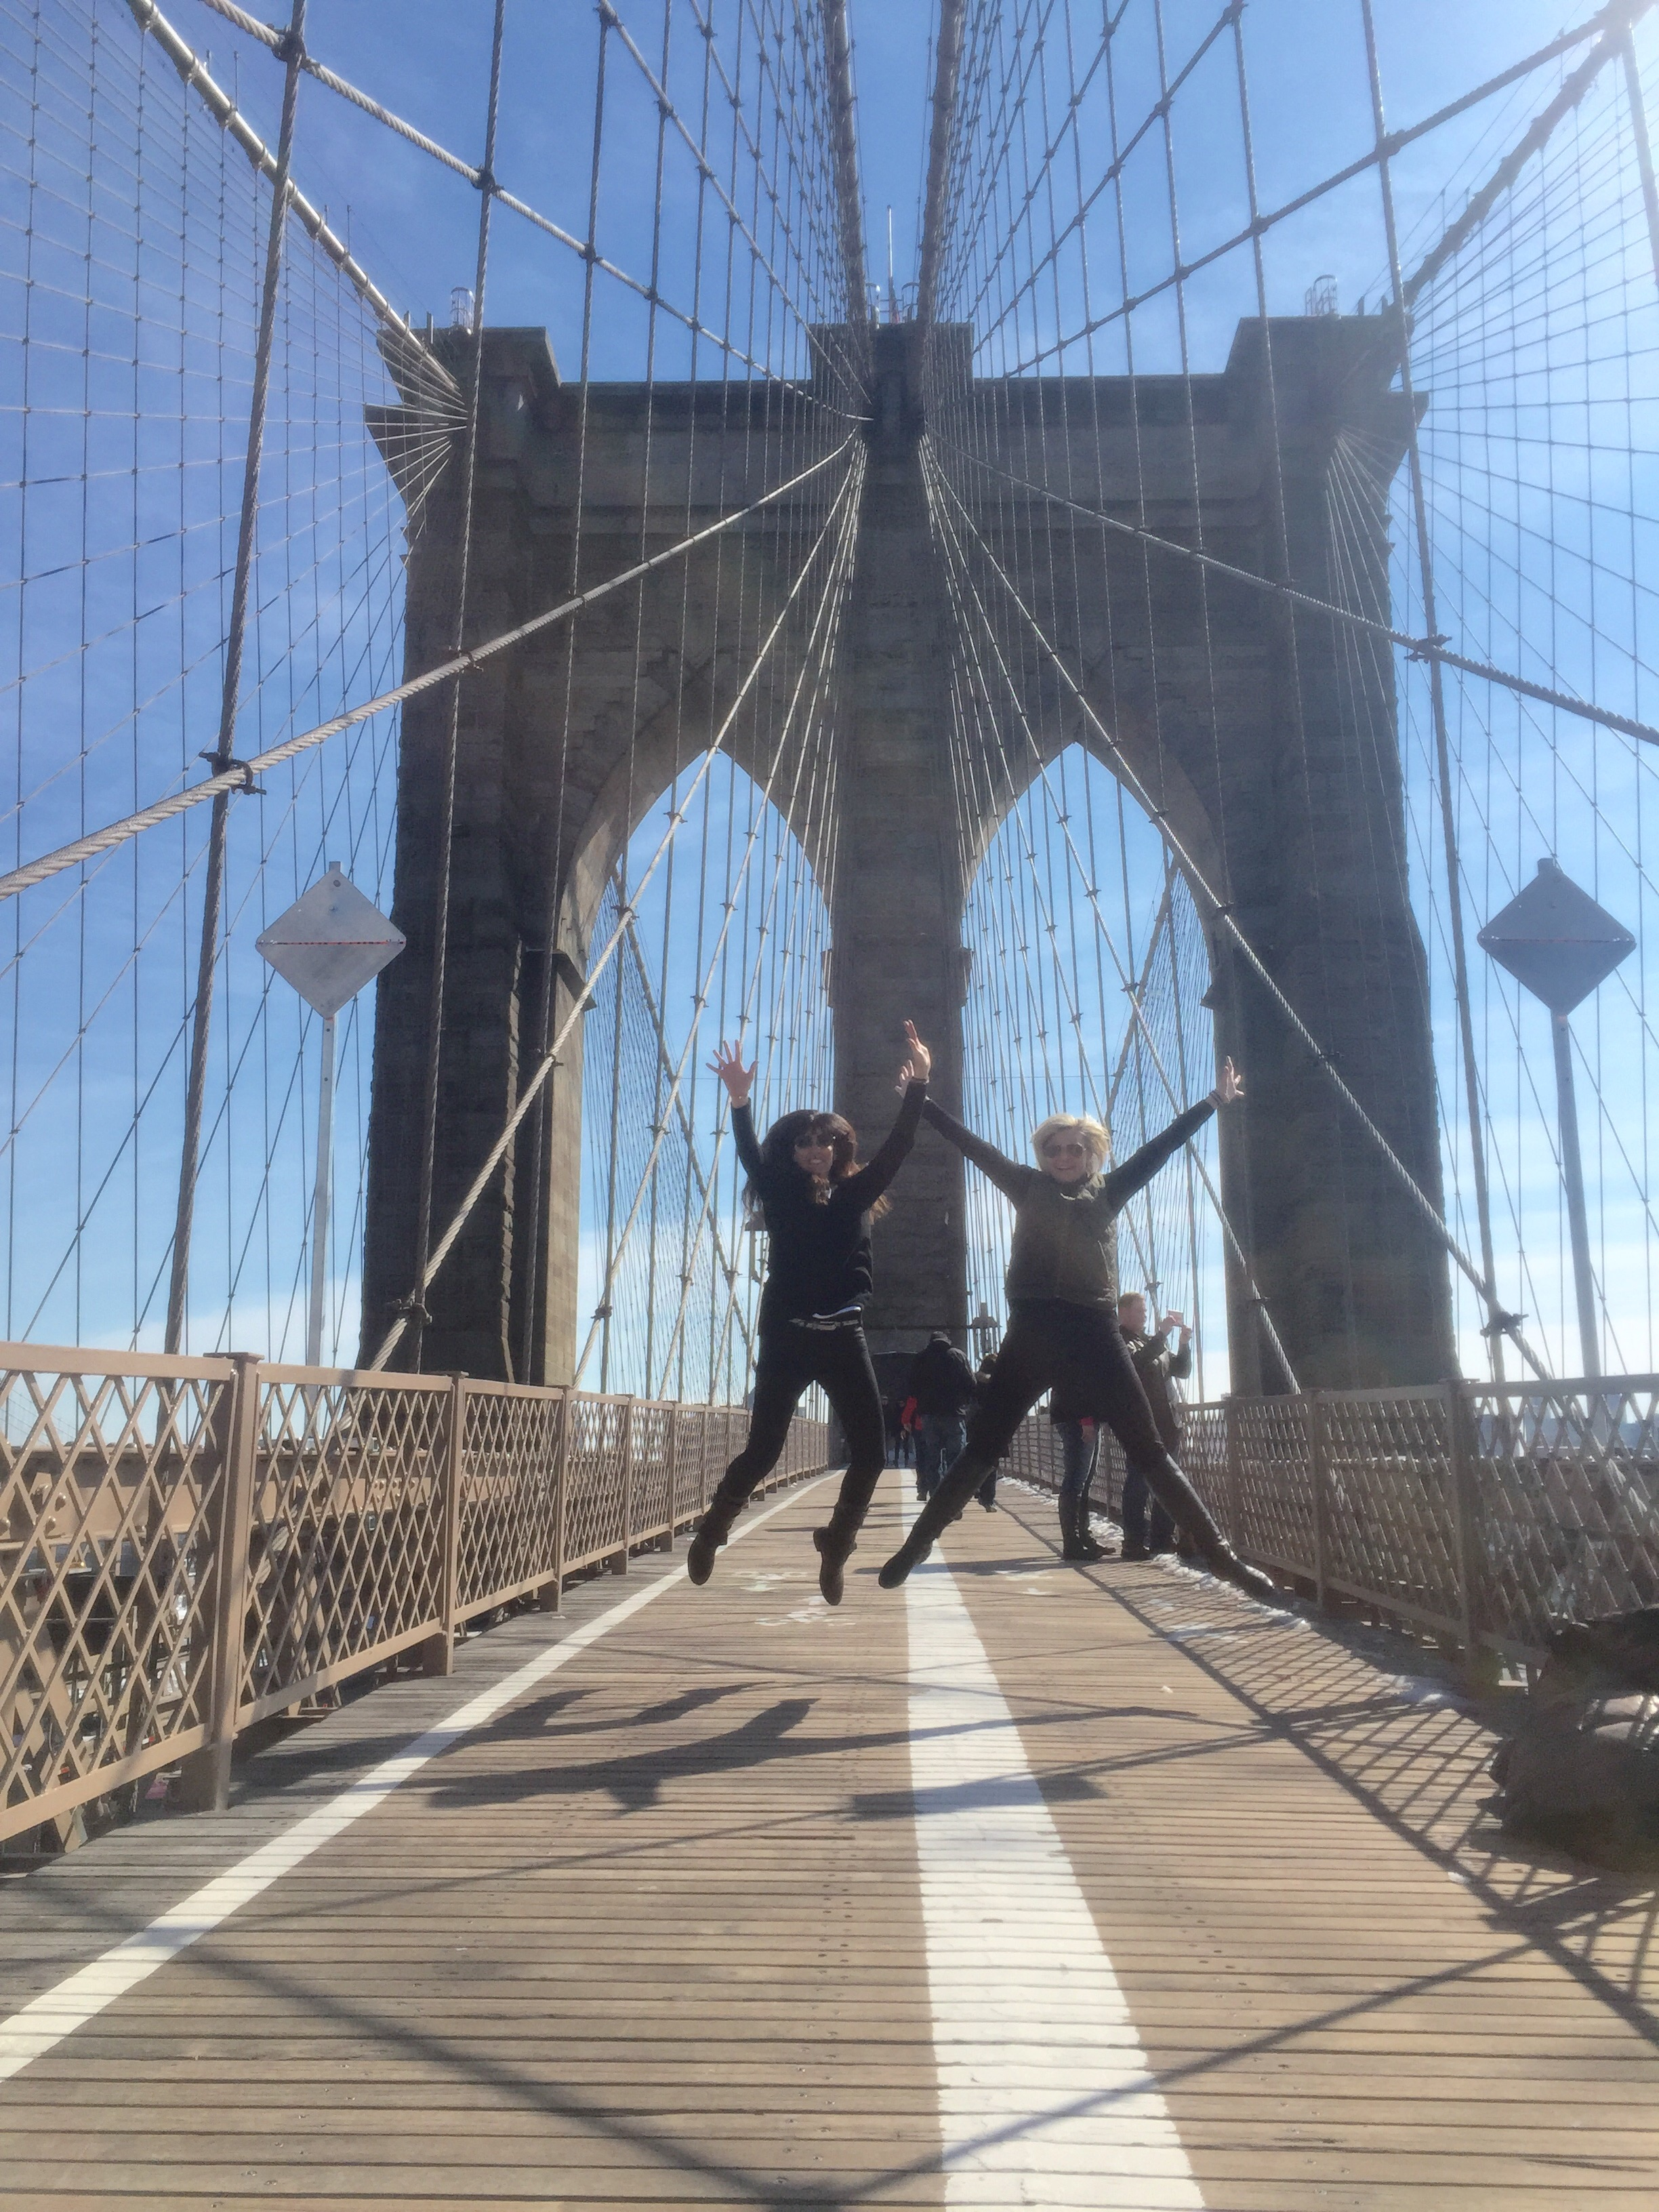 No trip is complete with a walk on the Brooklyn Bridge...and a slice of pizza. 🍕